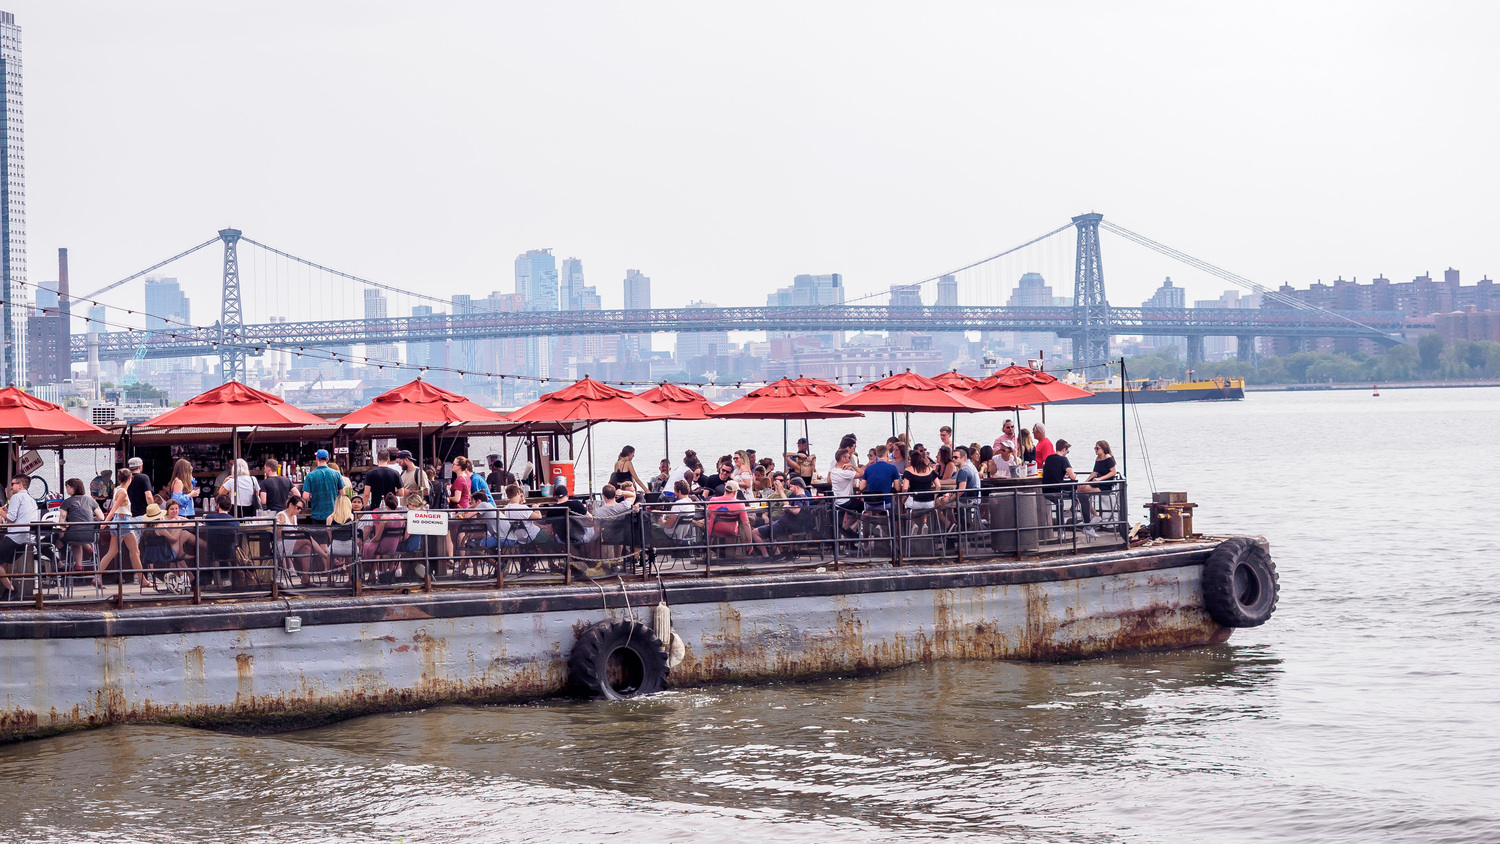 The Brooklyn Barge | Taken from WNYC Transmitter Park